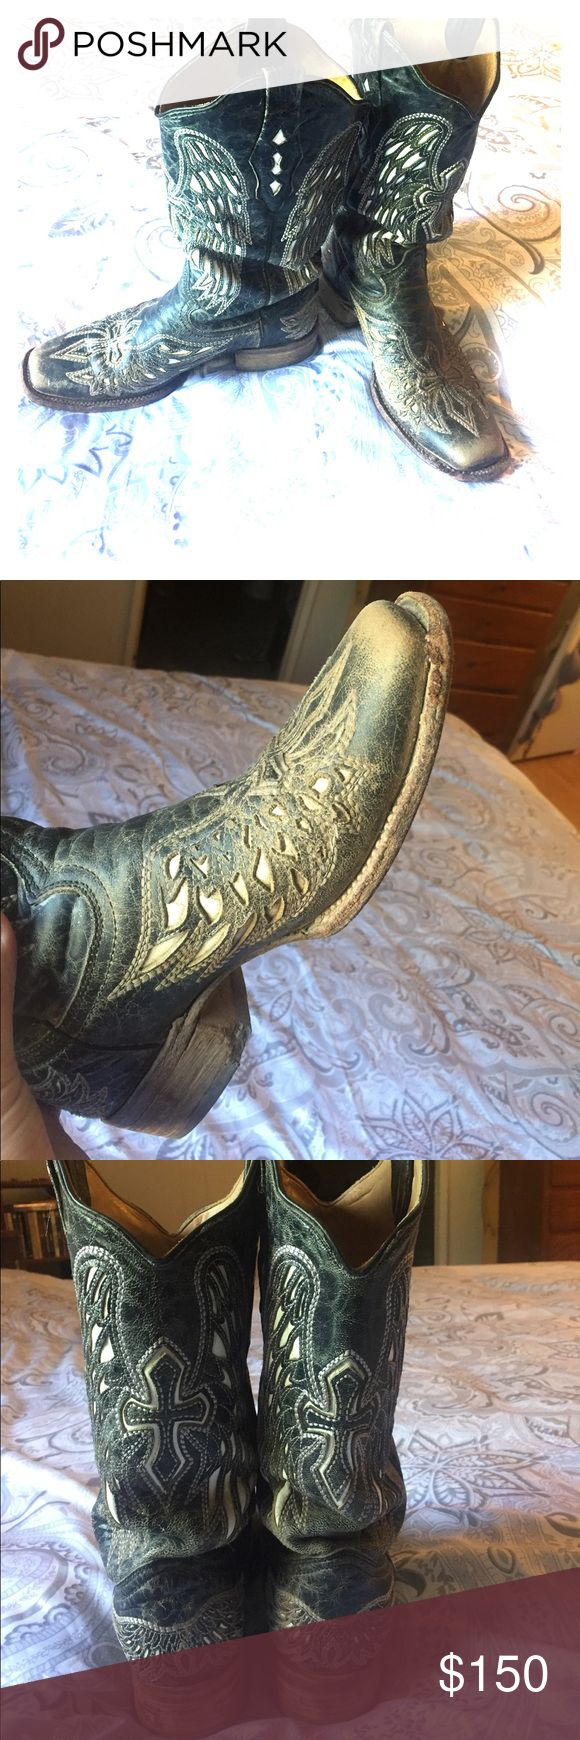 Corral vintage boots Has some wear shown on picture but can't hardly see it when worn, very cute and very comfortable! Corral Shoes Heeled Boots